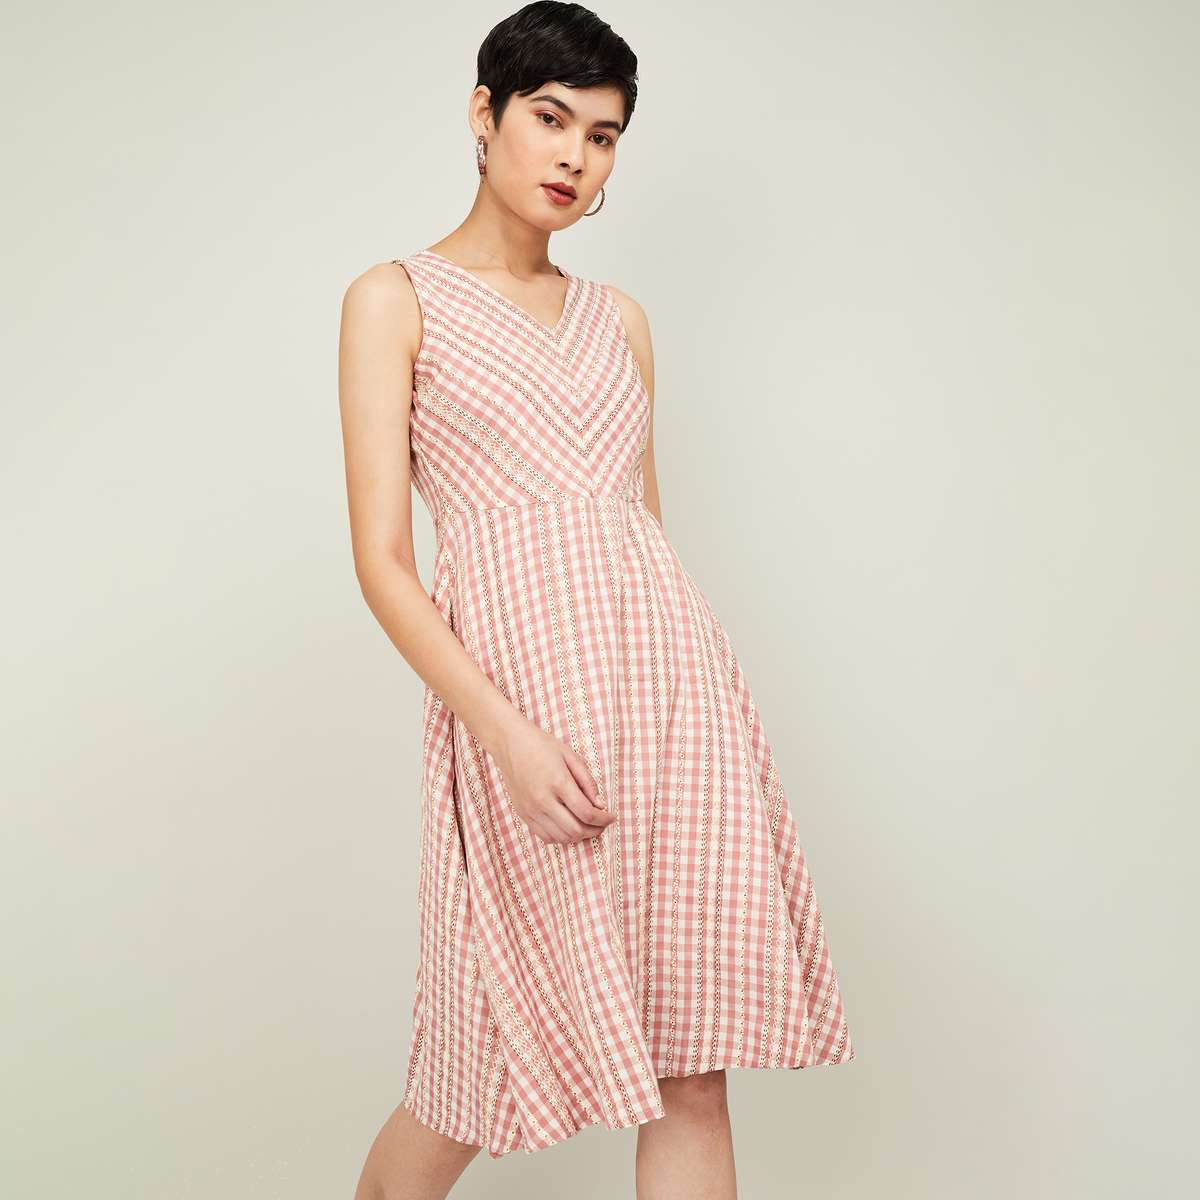 CODE Women Gingham Check Fit and Flare Dress with Embroidery